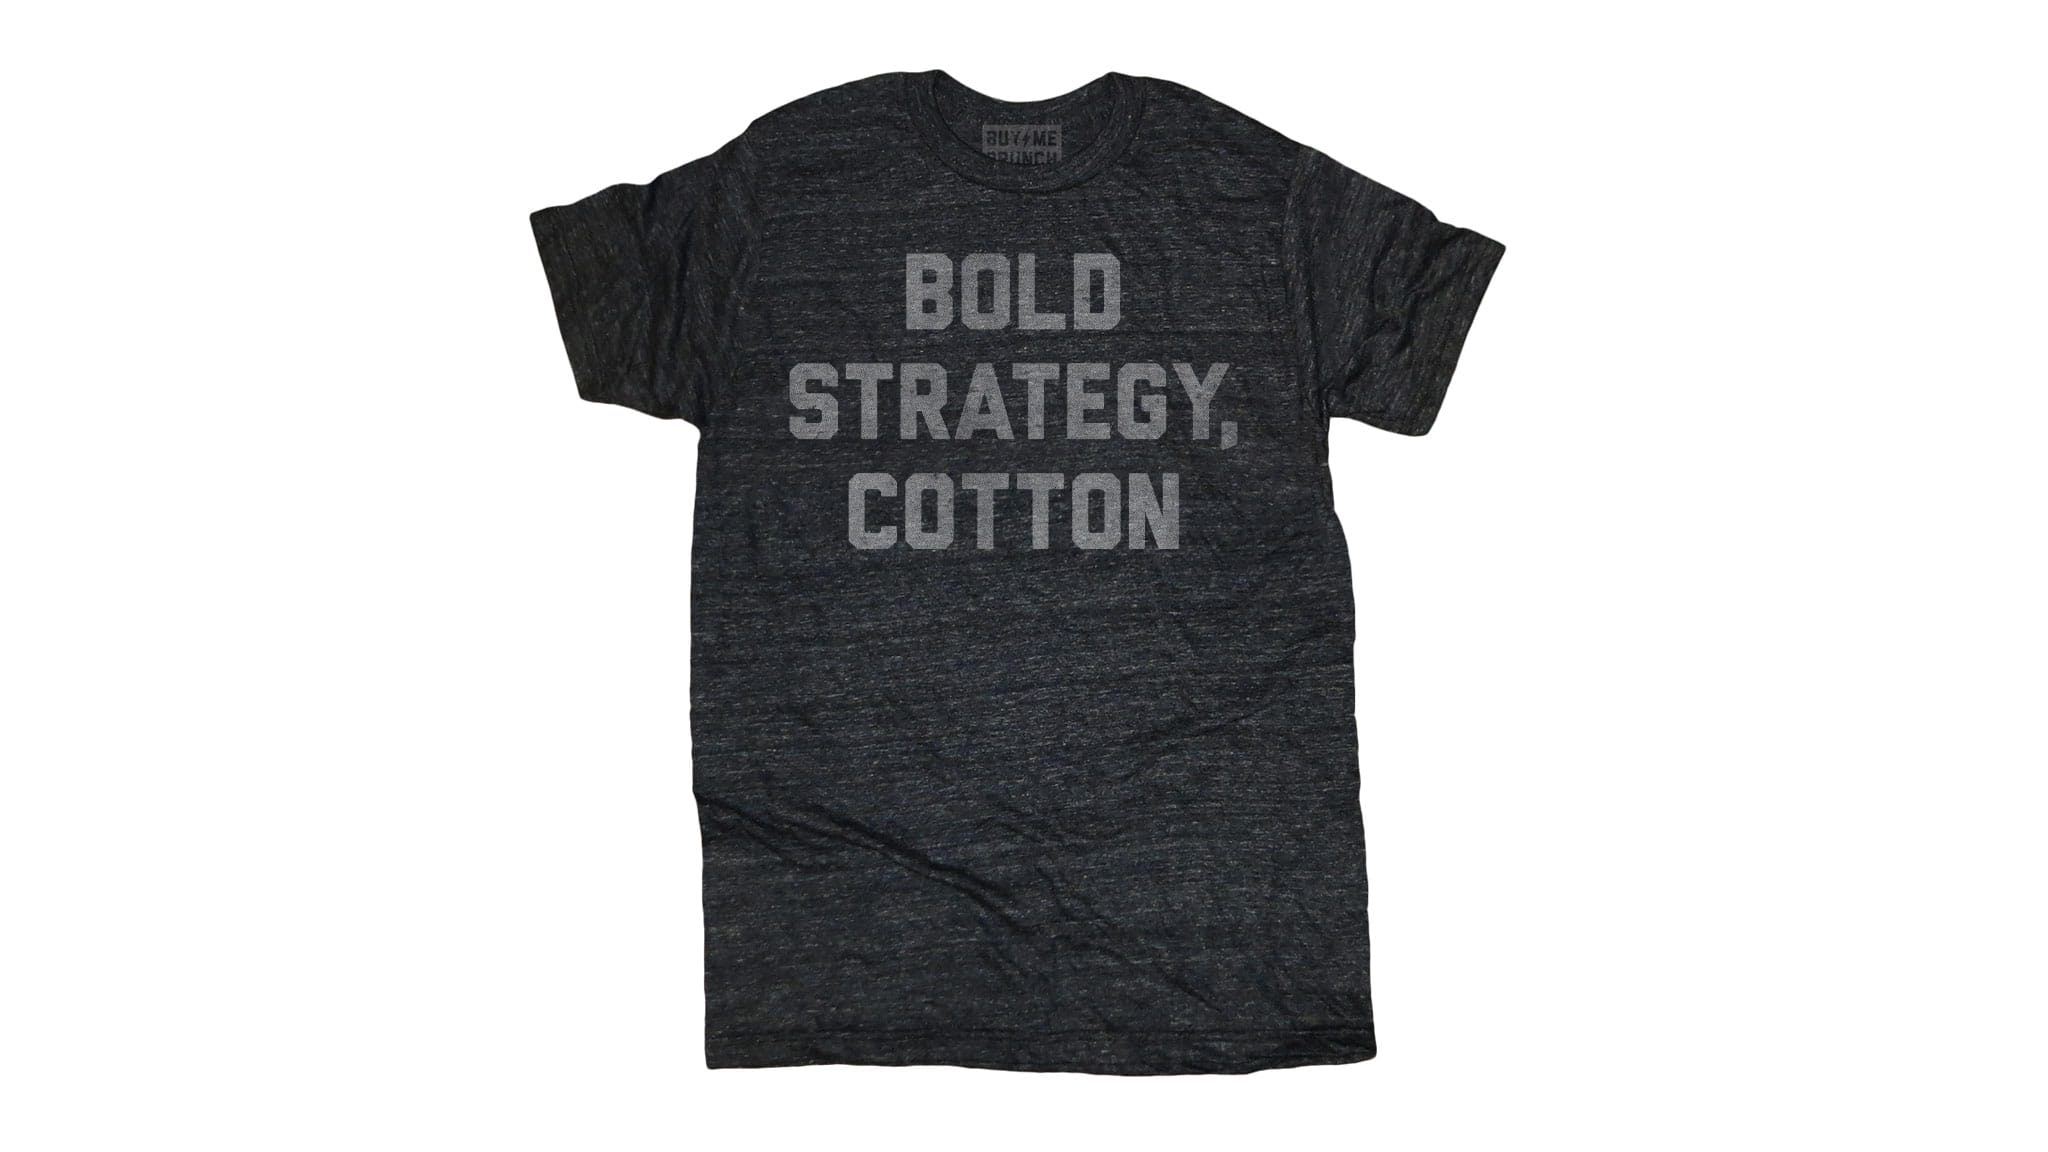 bold strategy, cotton tee  tshirts c 28 #8